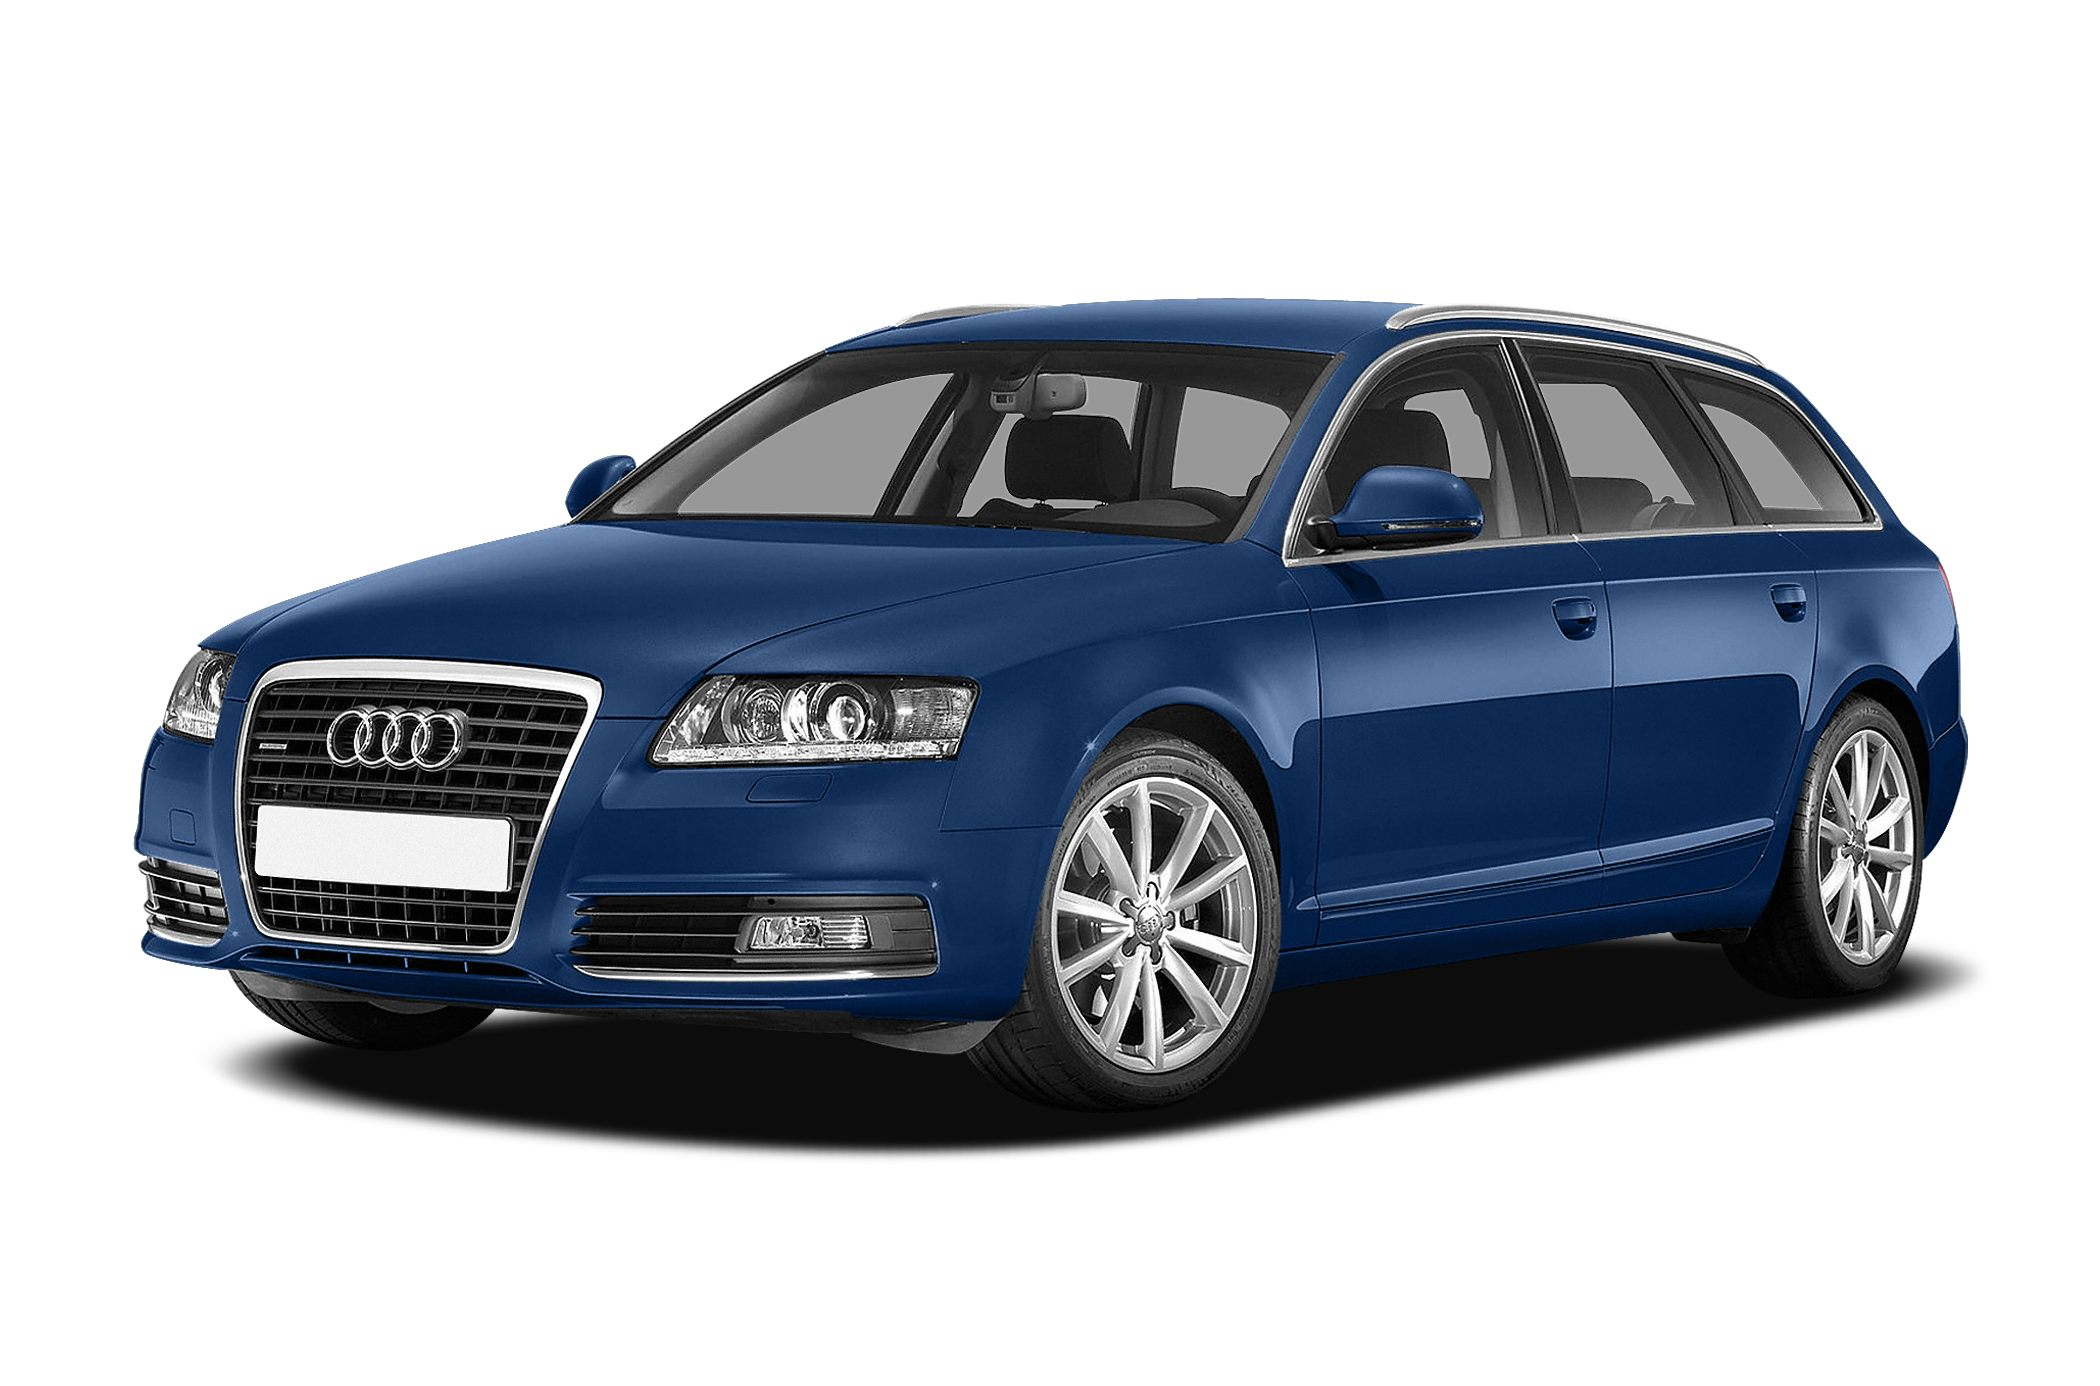 2011 Audi A6 3.0 Premium Quattro Sedan for sale in Richmond for $33,699 with 16,591 miles.